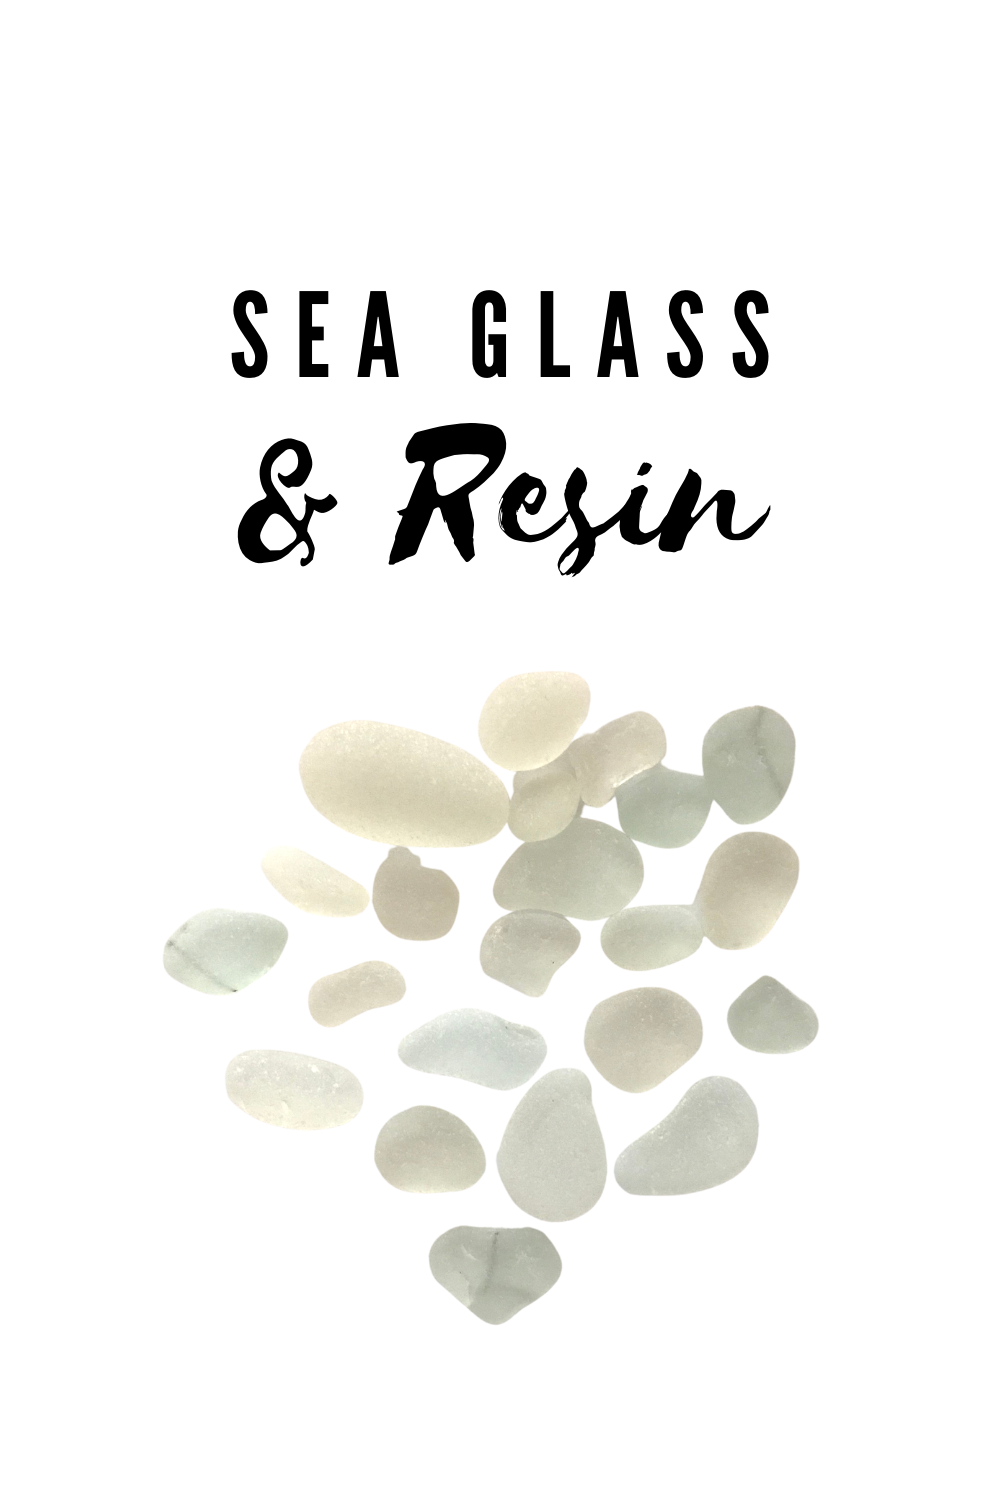 Resin and sea glass